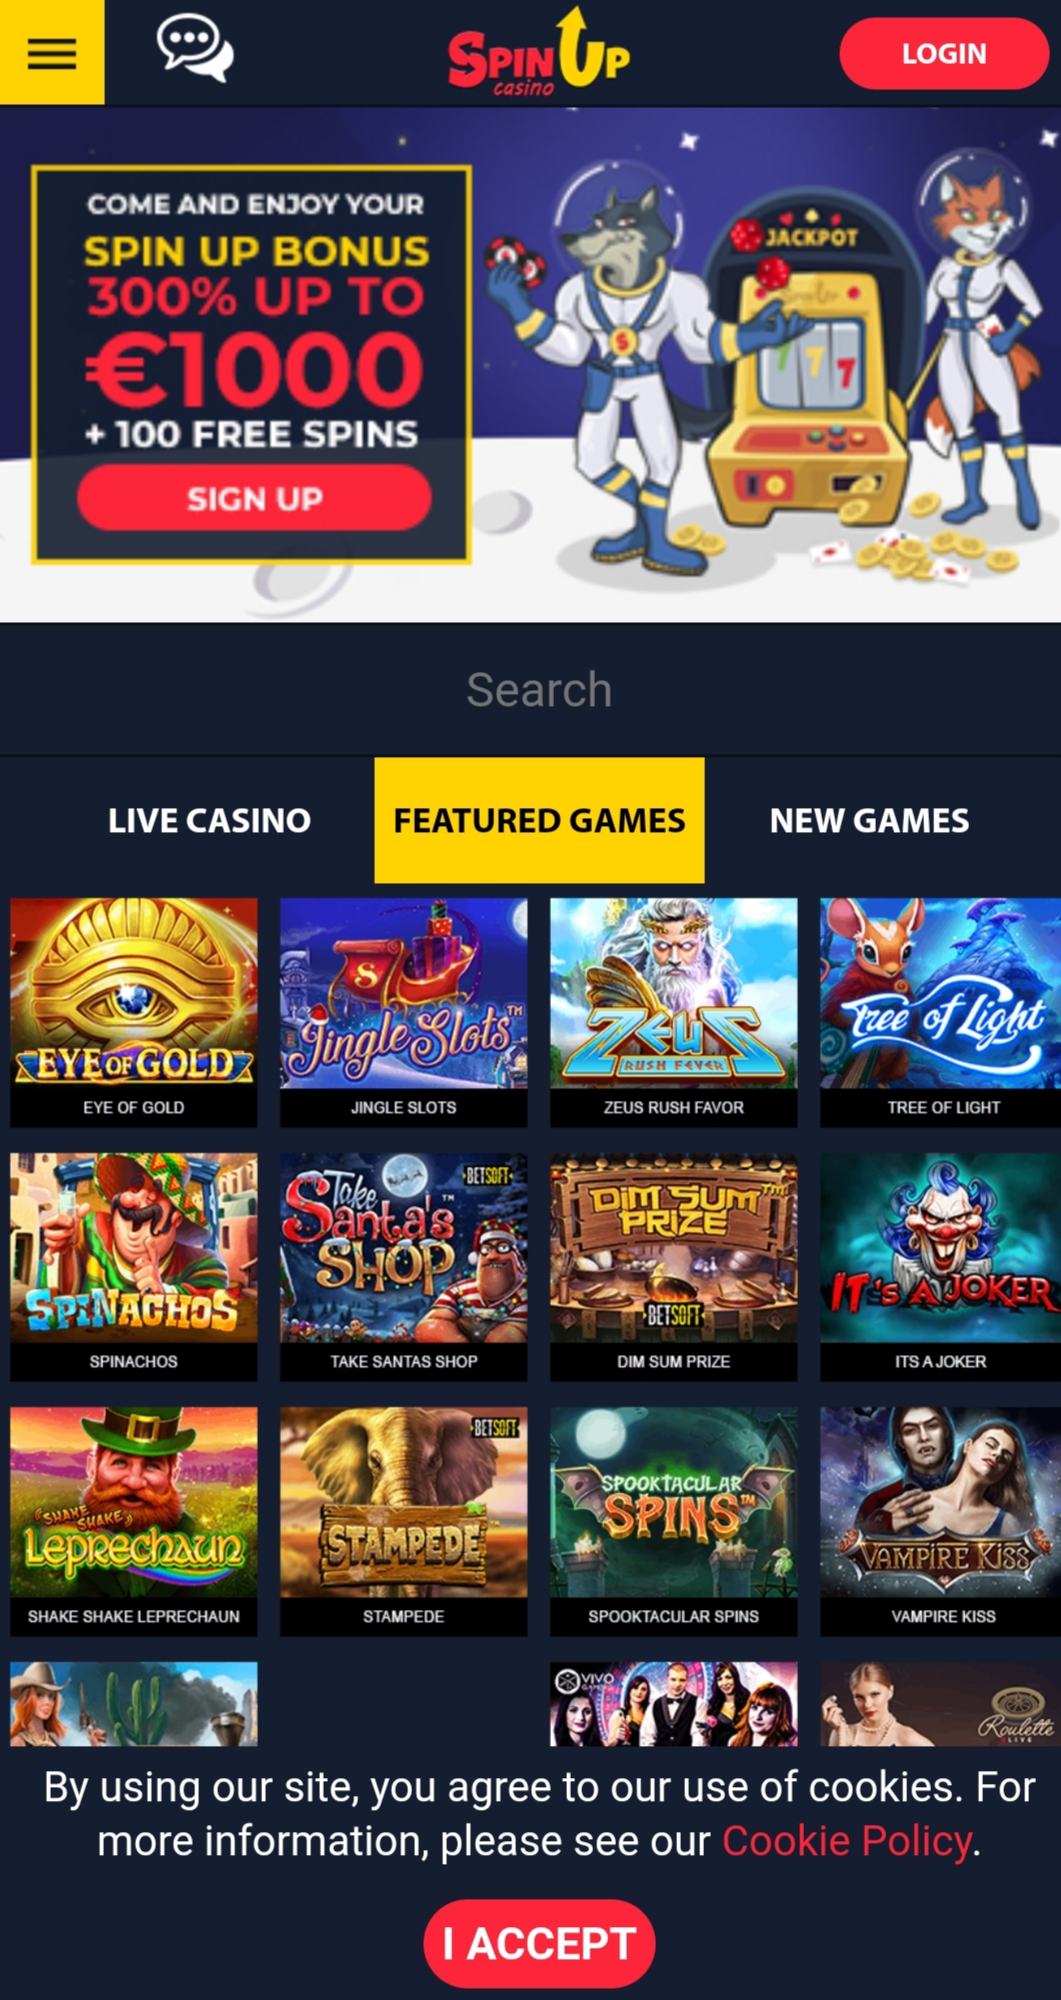 SpinUp Casino Review